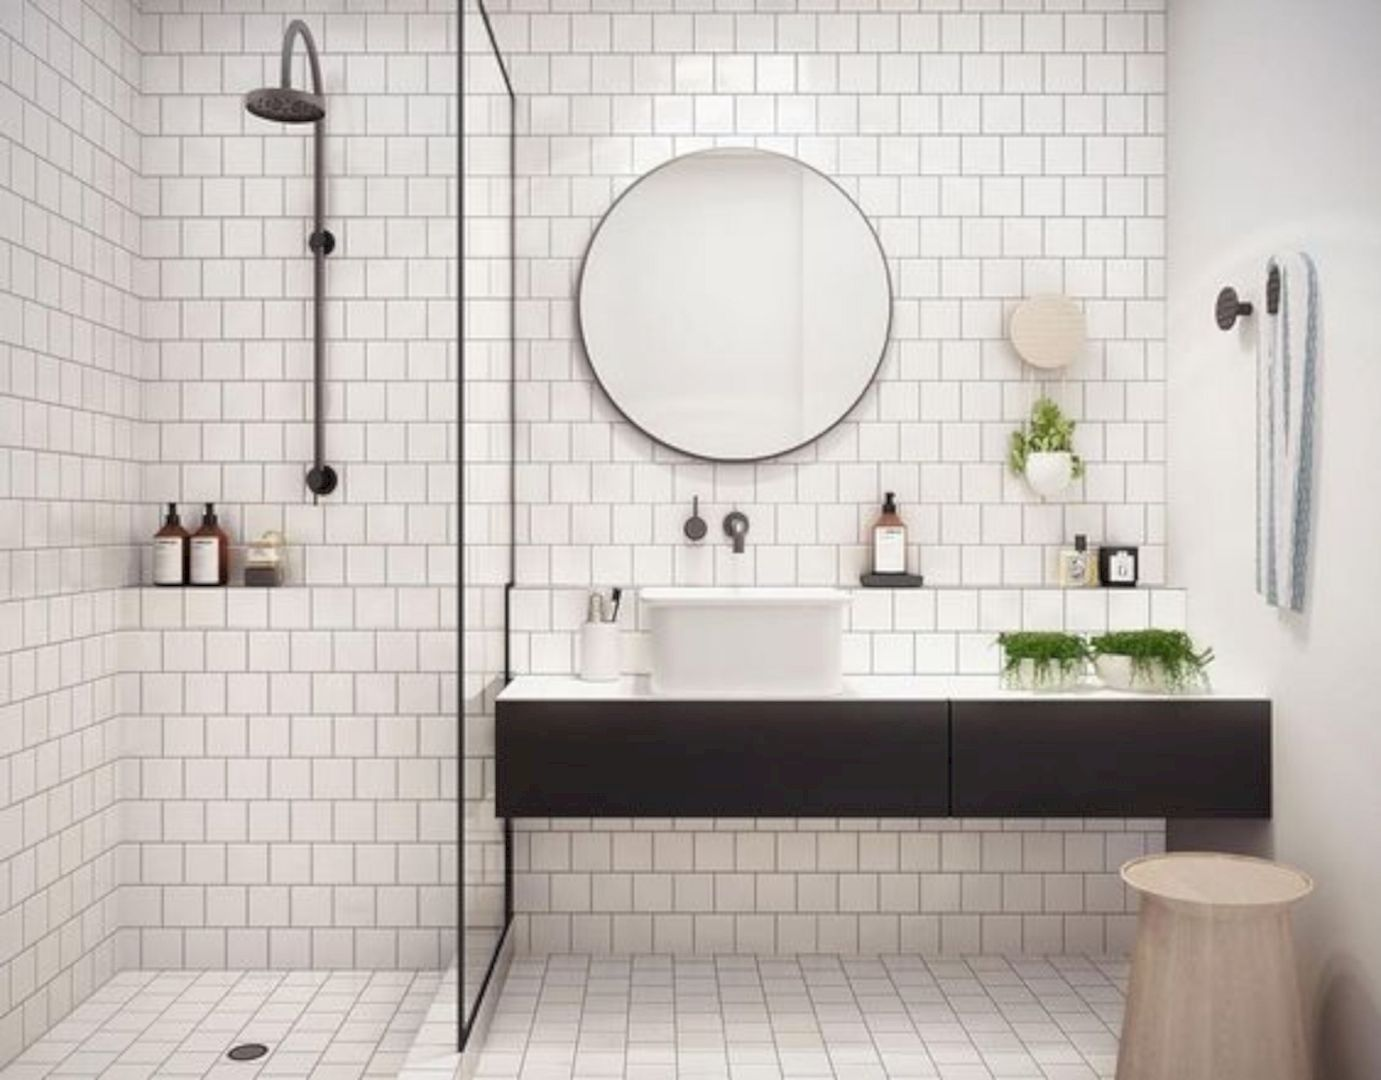 Bathroom Design Ikea Awesome 15 Inspiring Bathroom Design Ideas With Ikea  Bathroom Designs Review